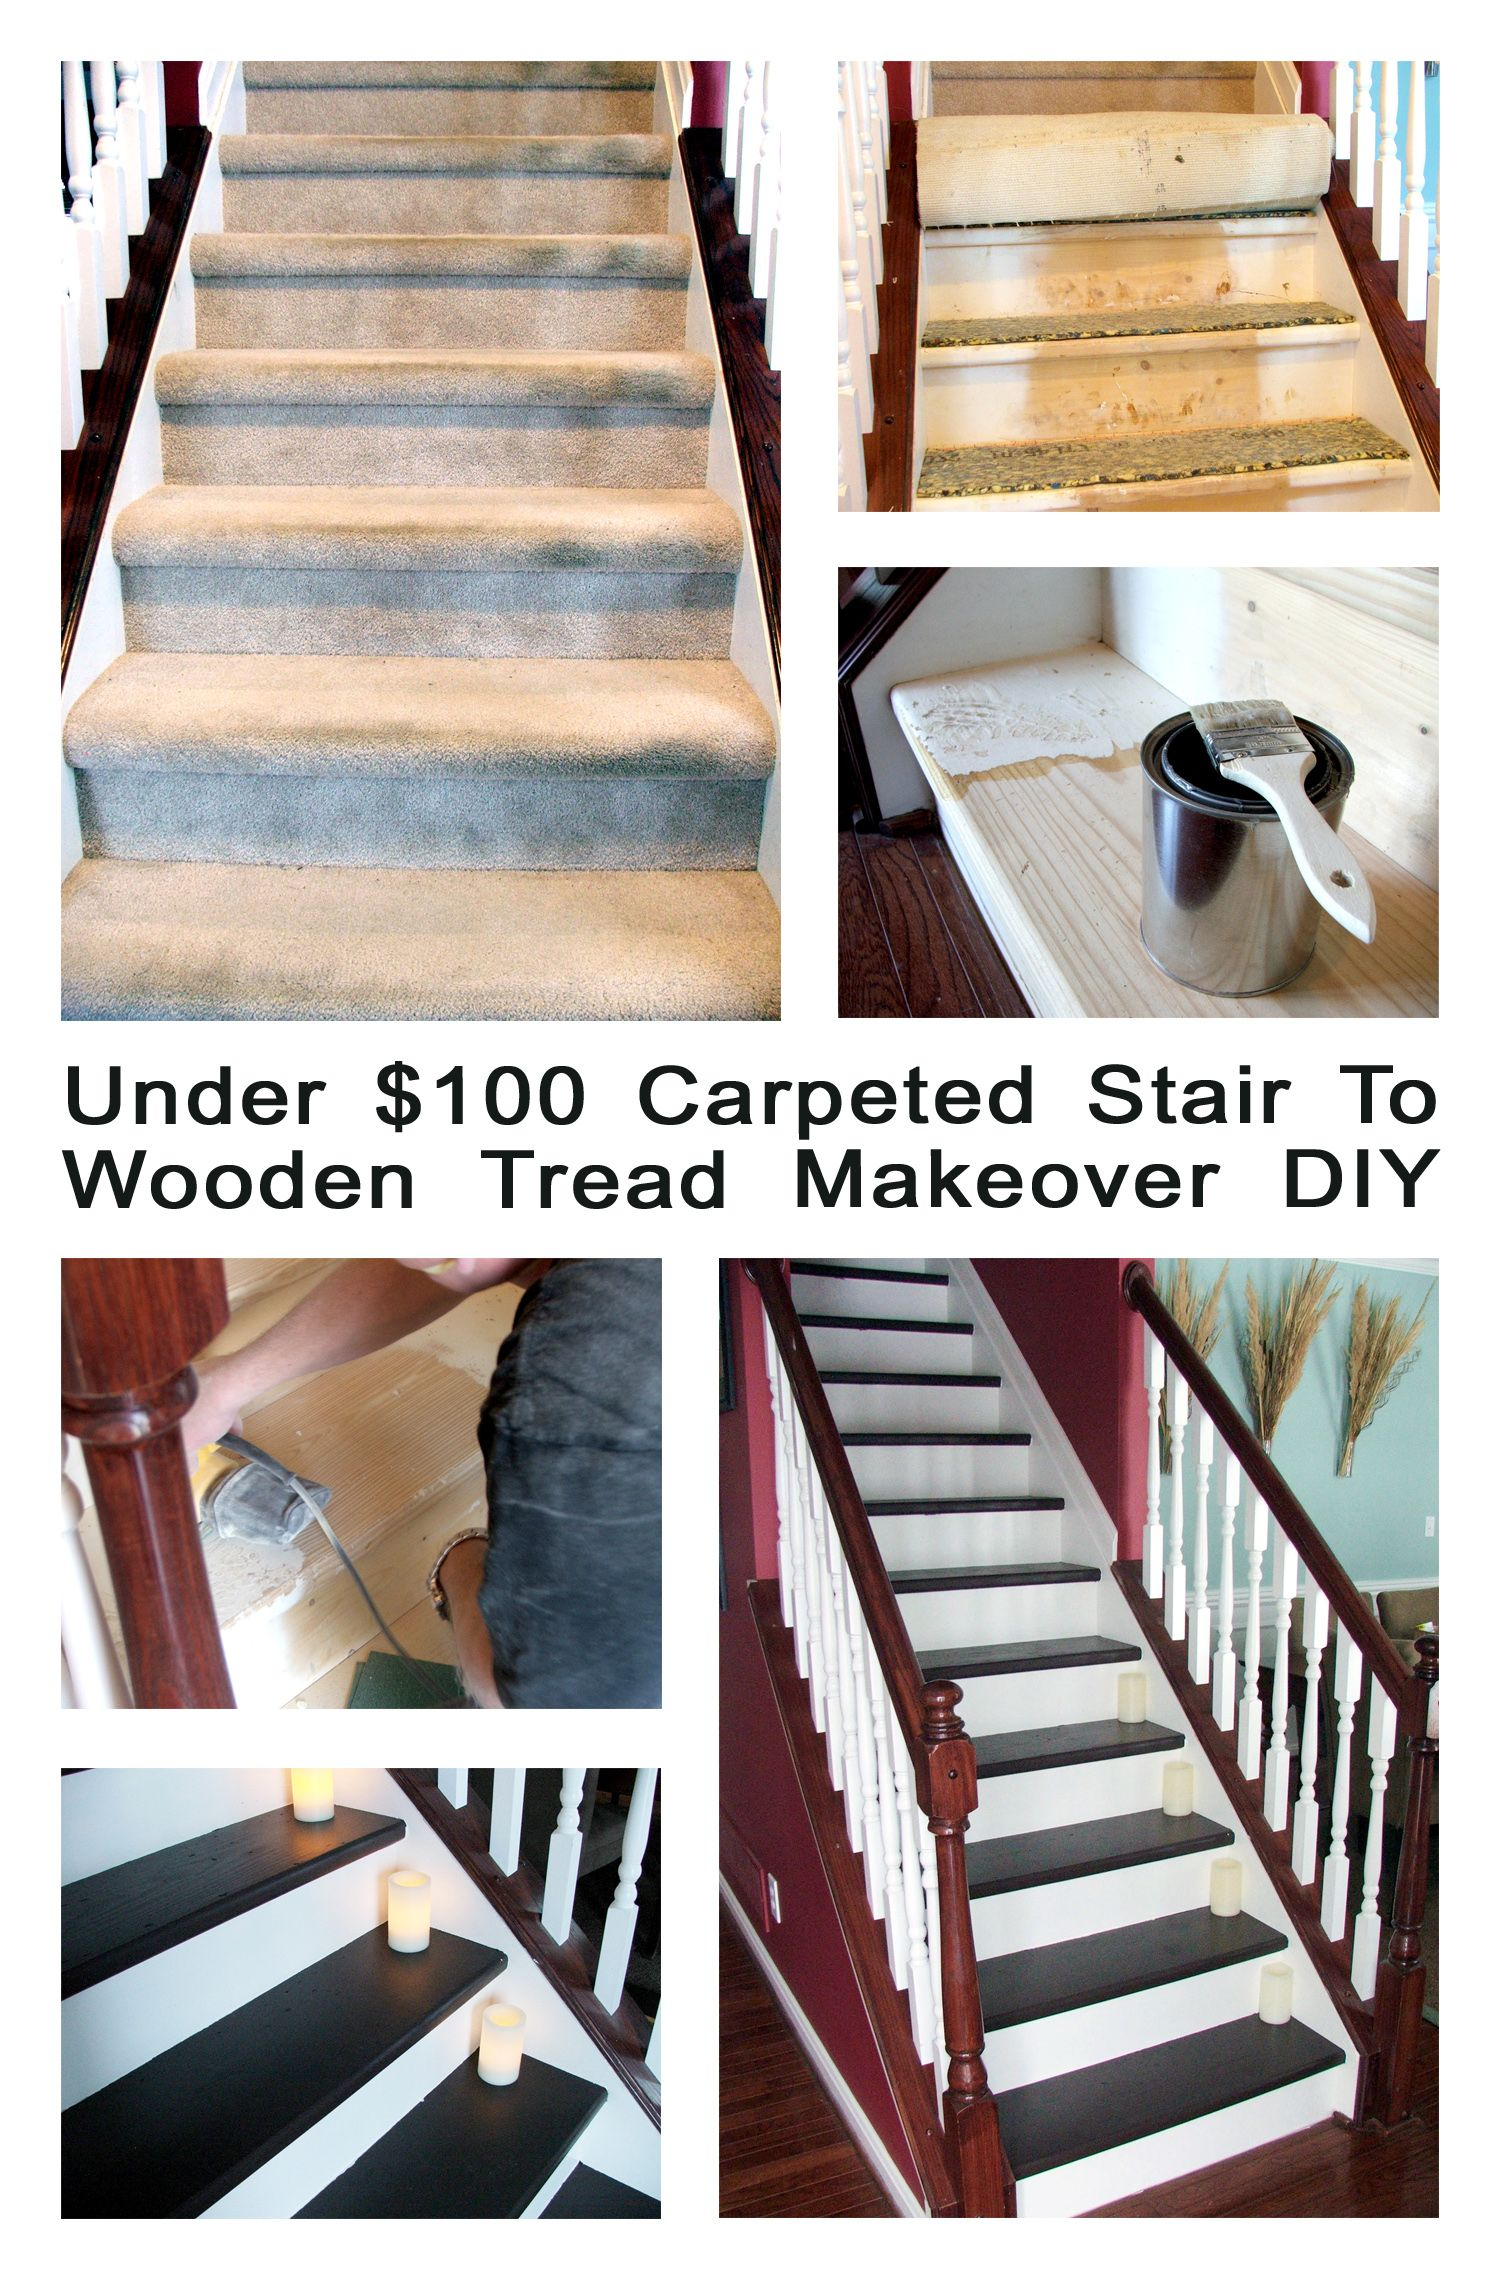 this is to take carpeted stairs and paint stain them but i wonder